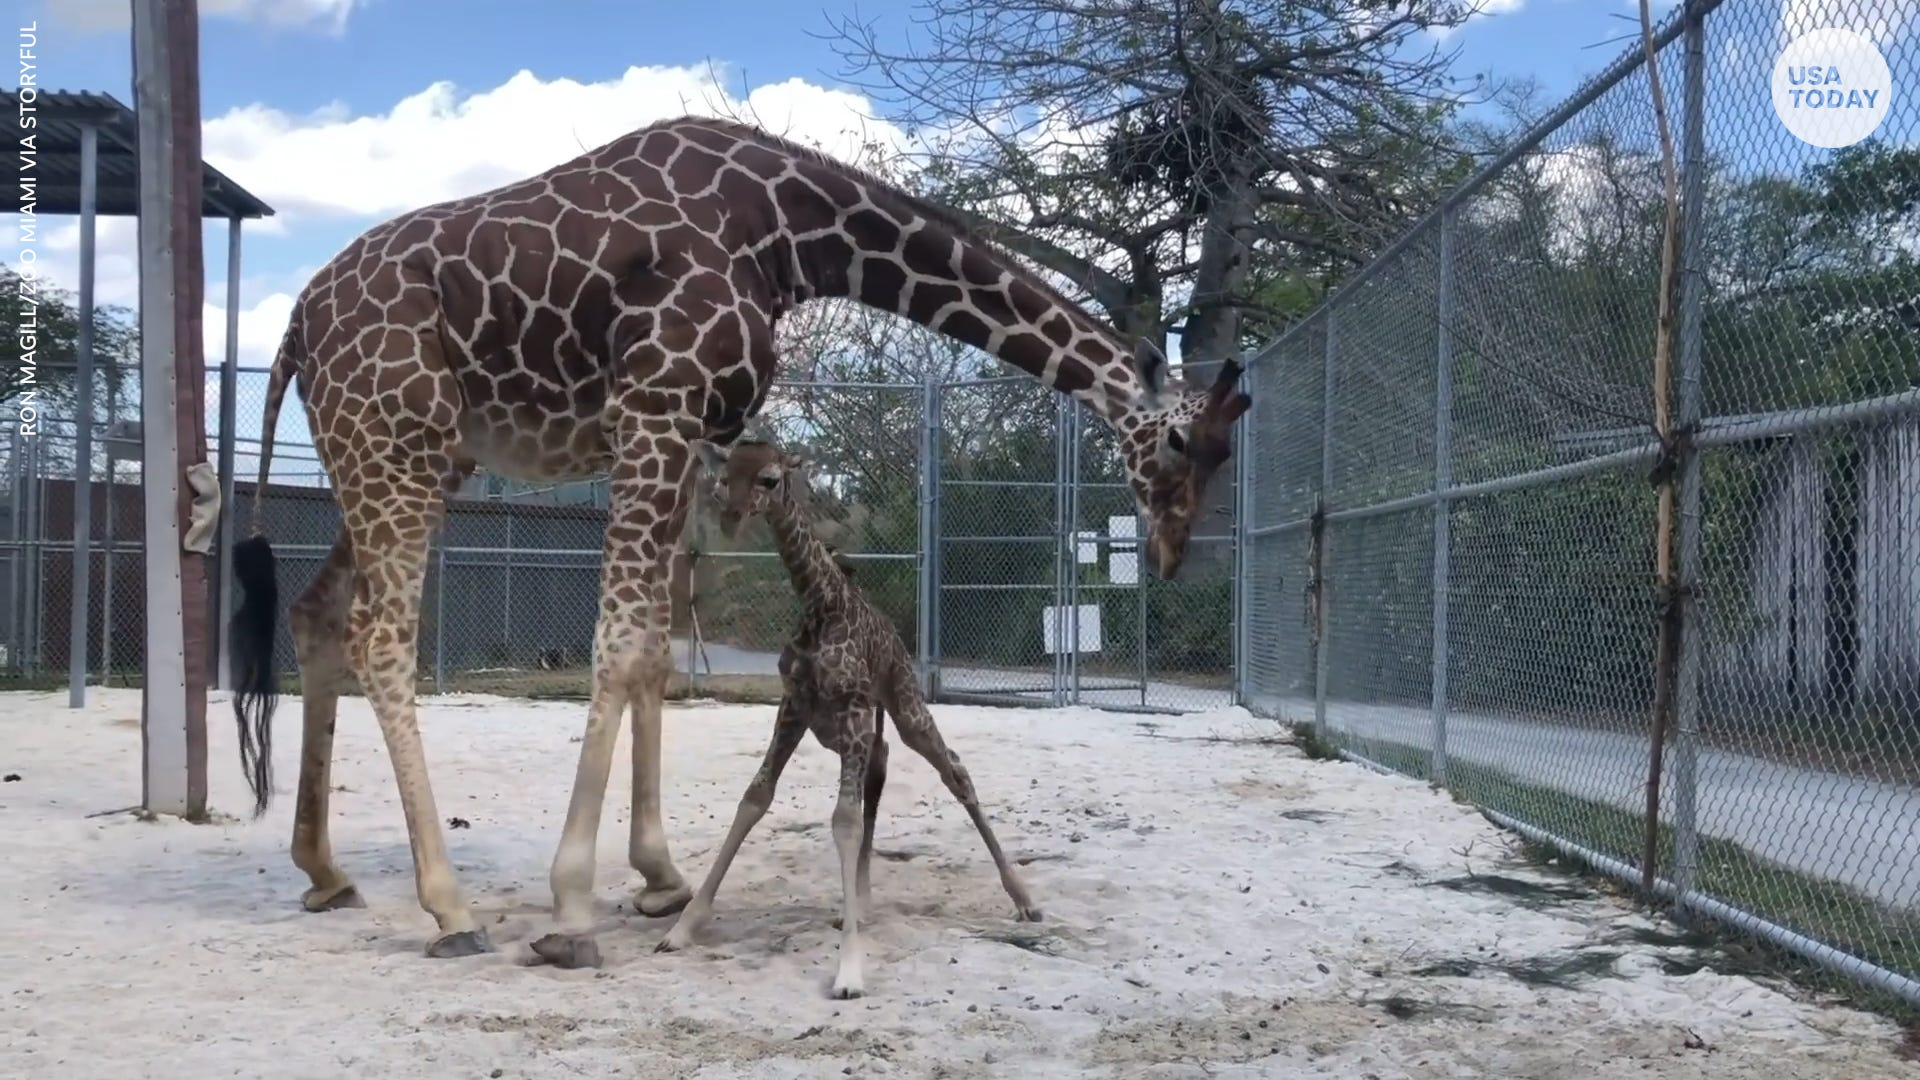 Adorable baby giraffe wobbles through first steps minutes after being born at Miami zoo